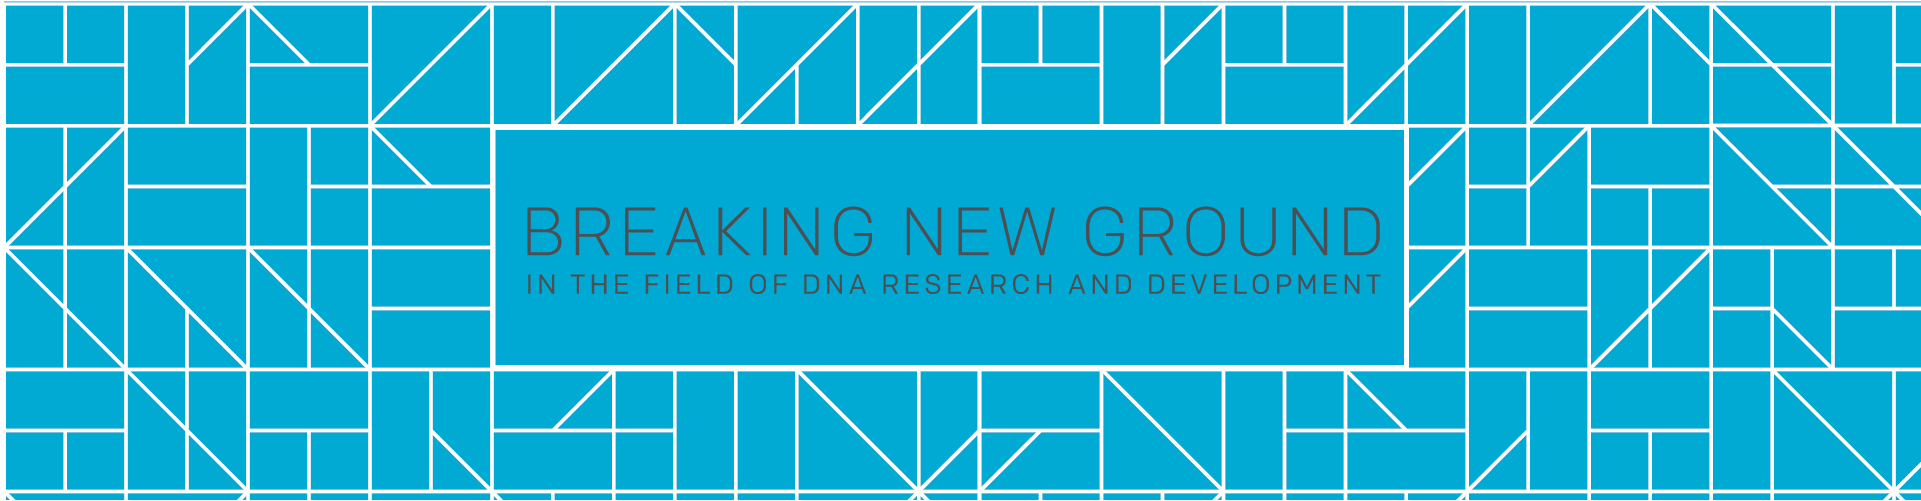 Homepage Slider DNA Solutions Breaking New Ground DNA Research and Development